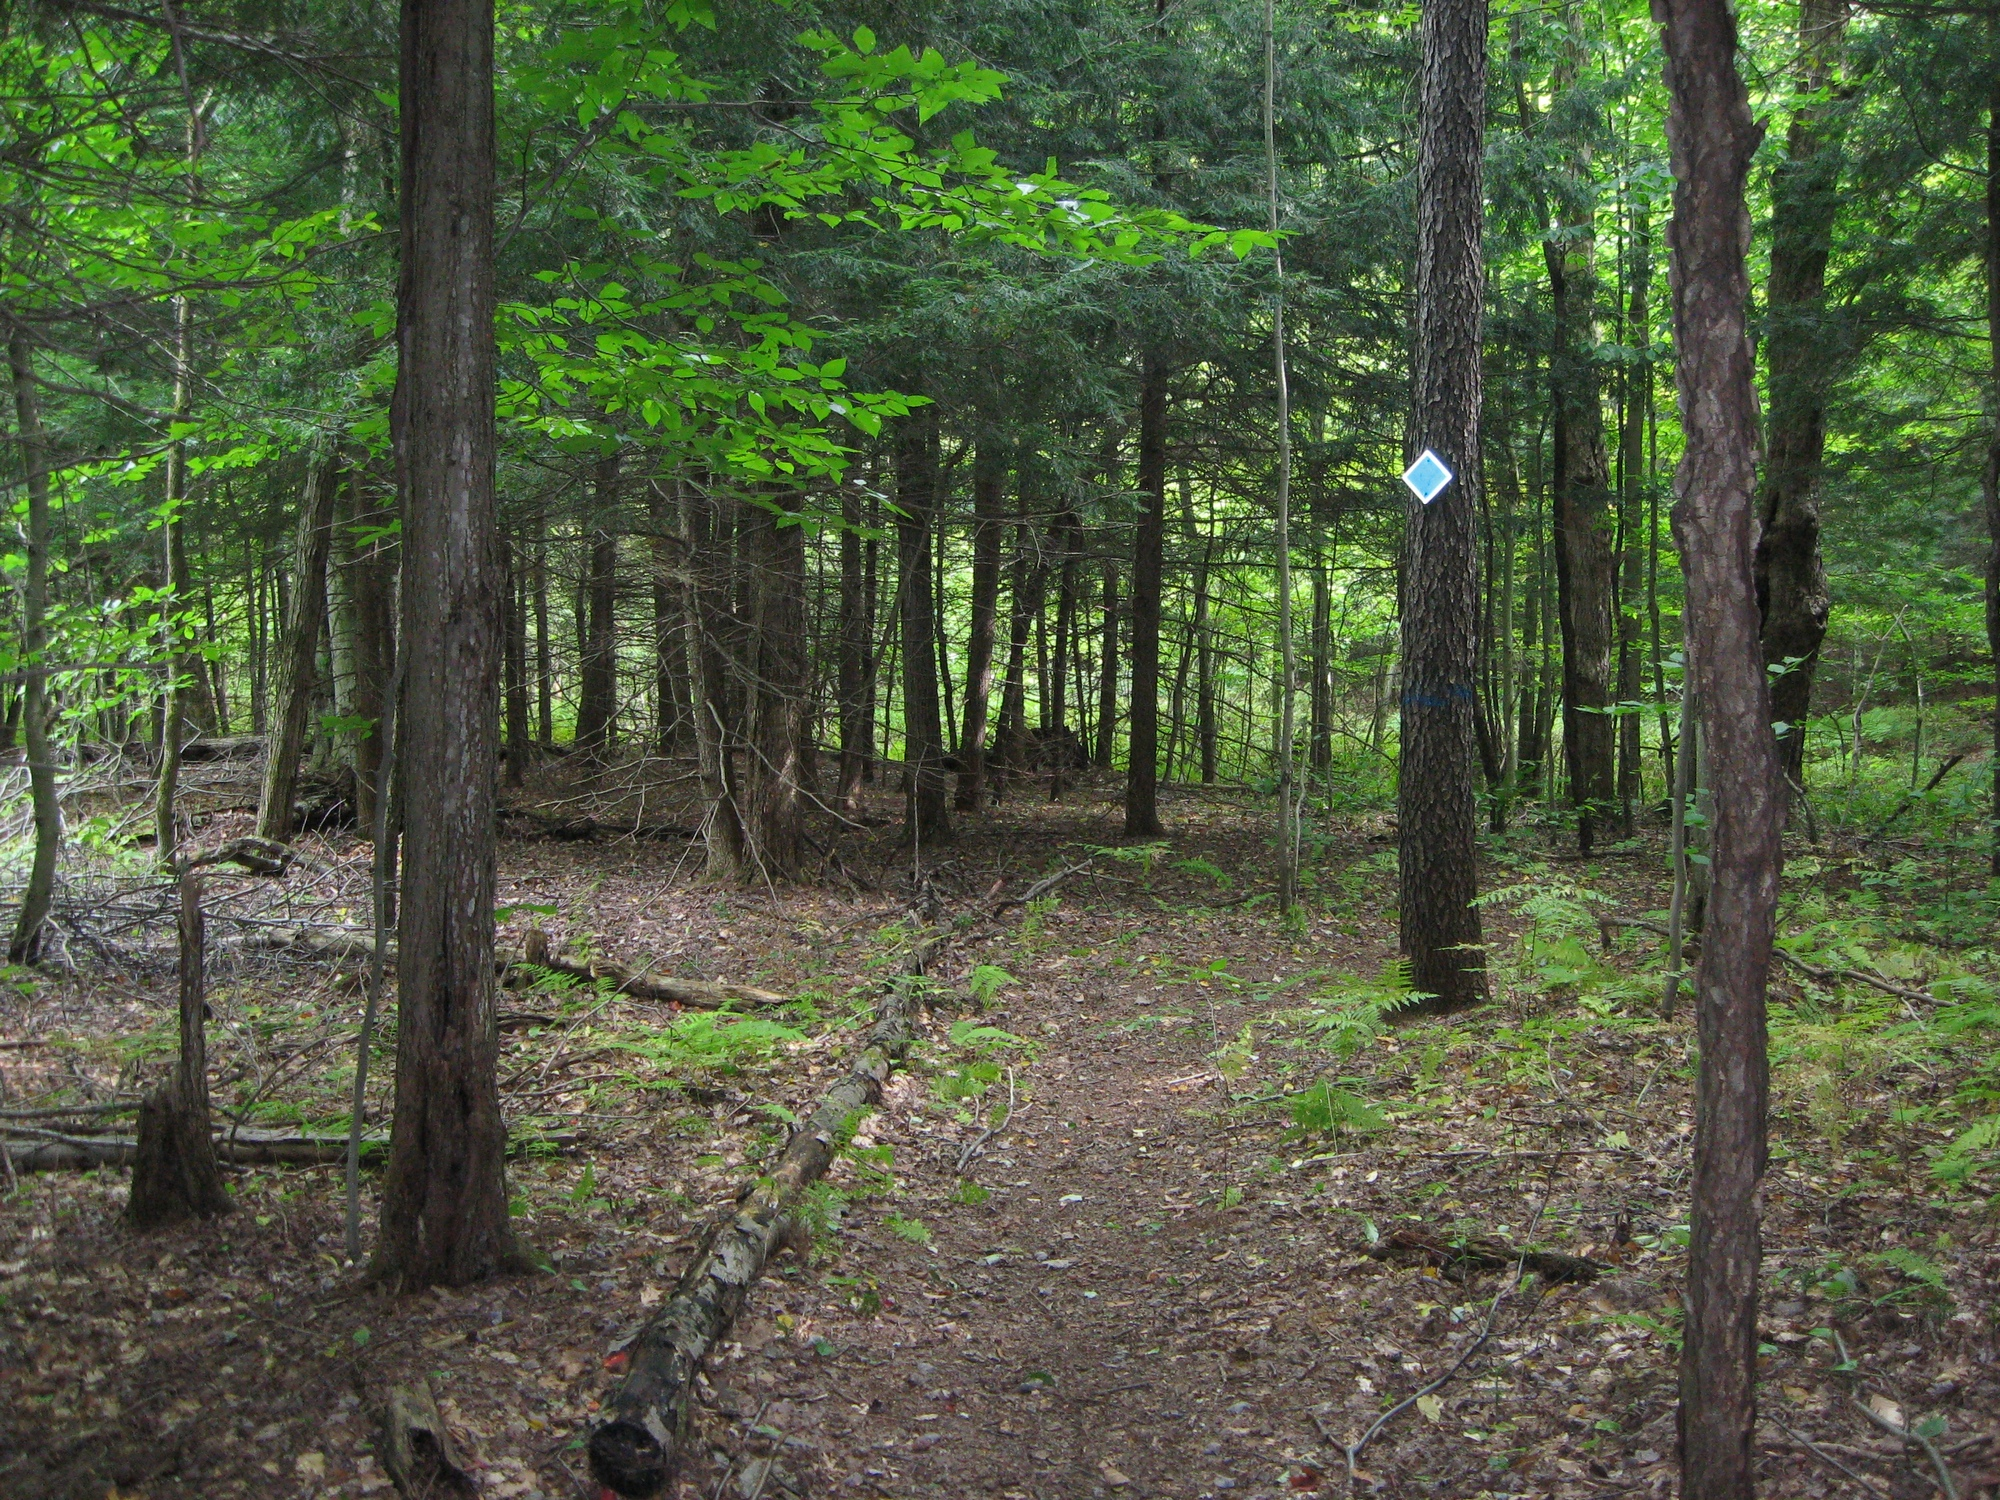 A view along one of the trails.